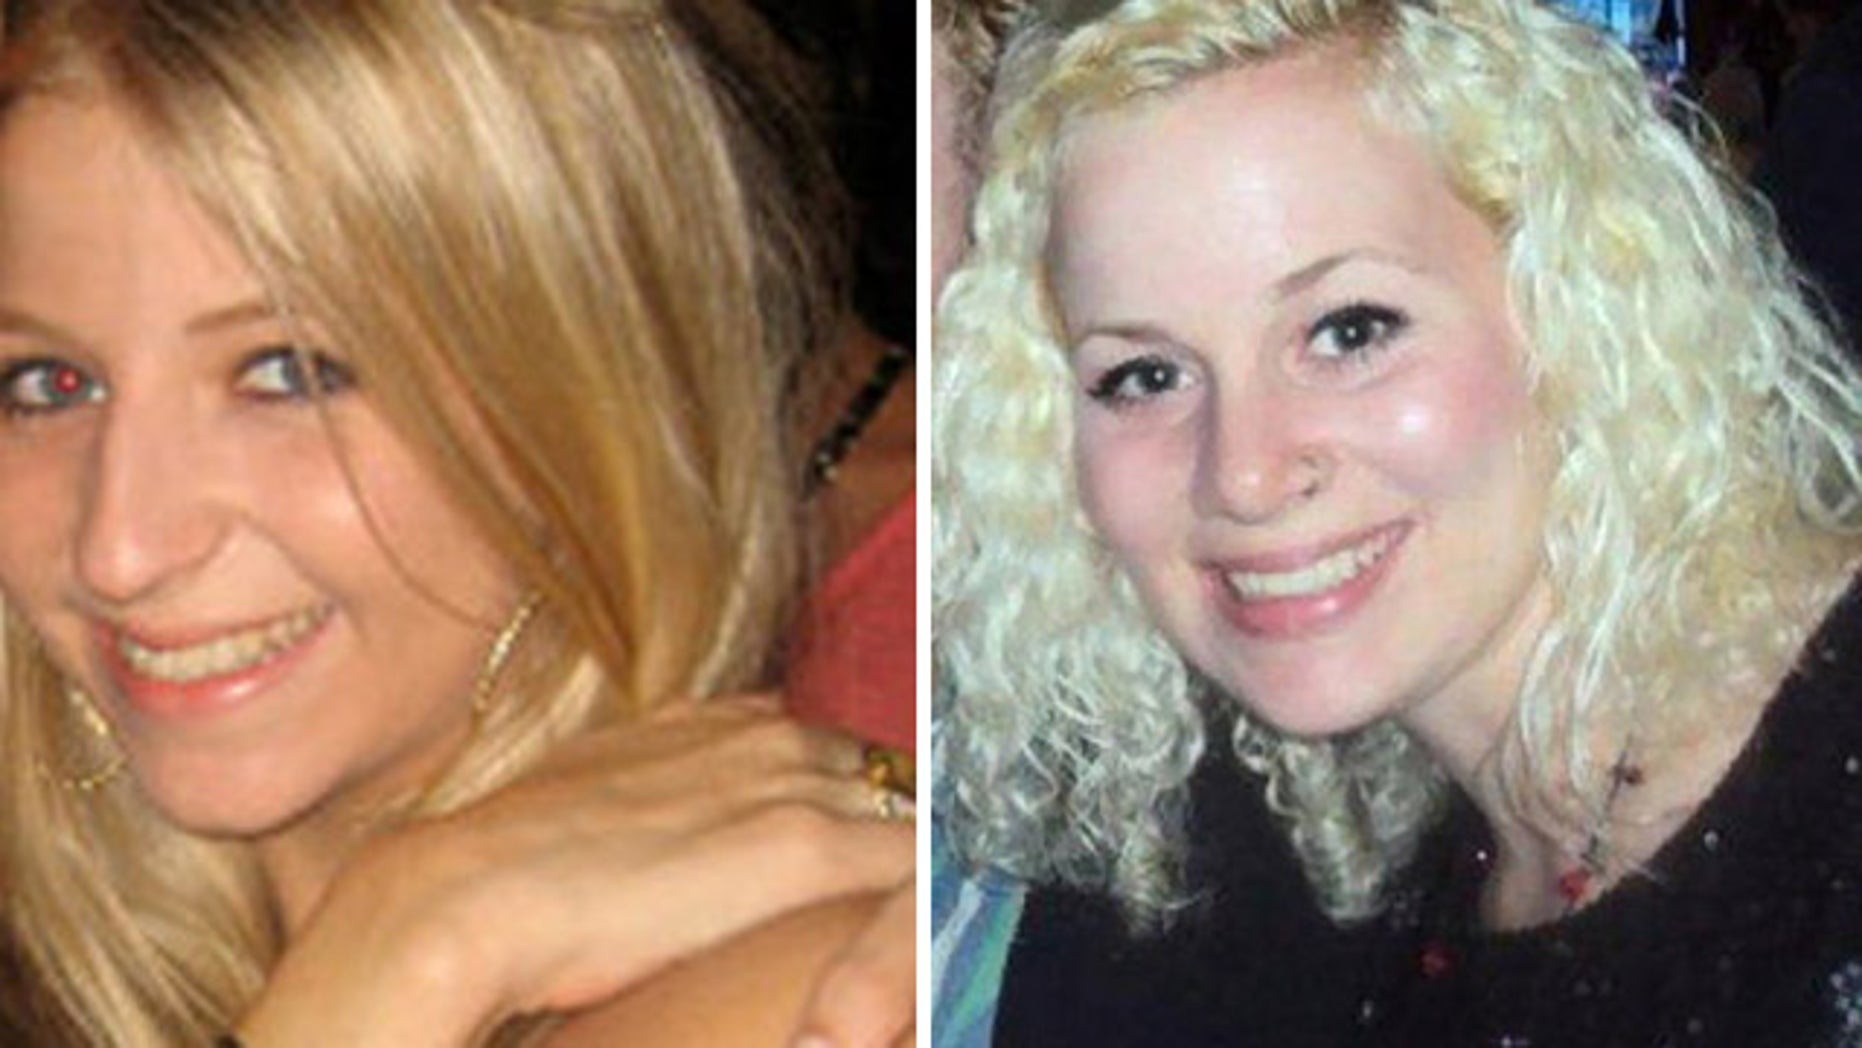 FILE: This photo shows Lauren Spierer, left, and Mickey Shunick.